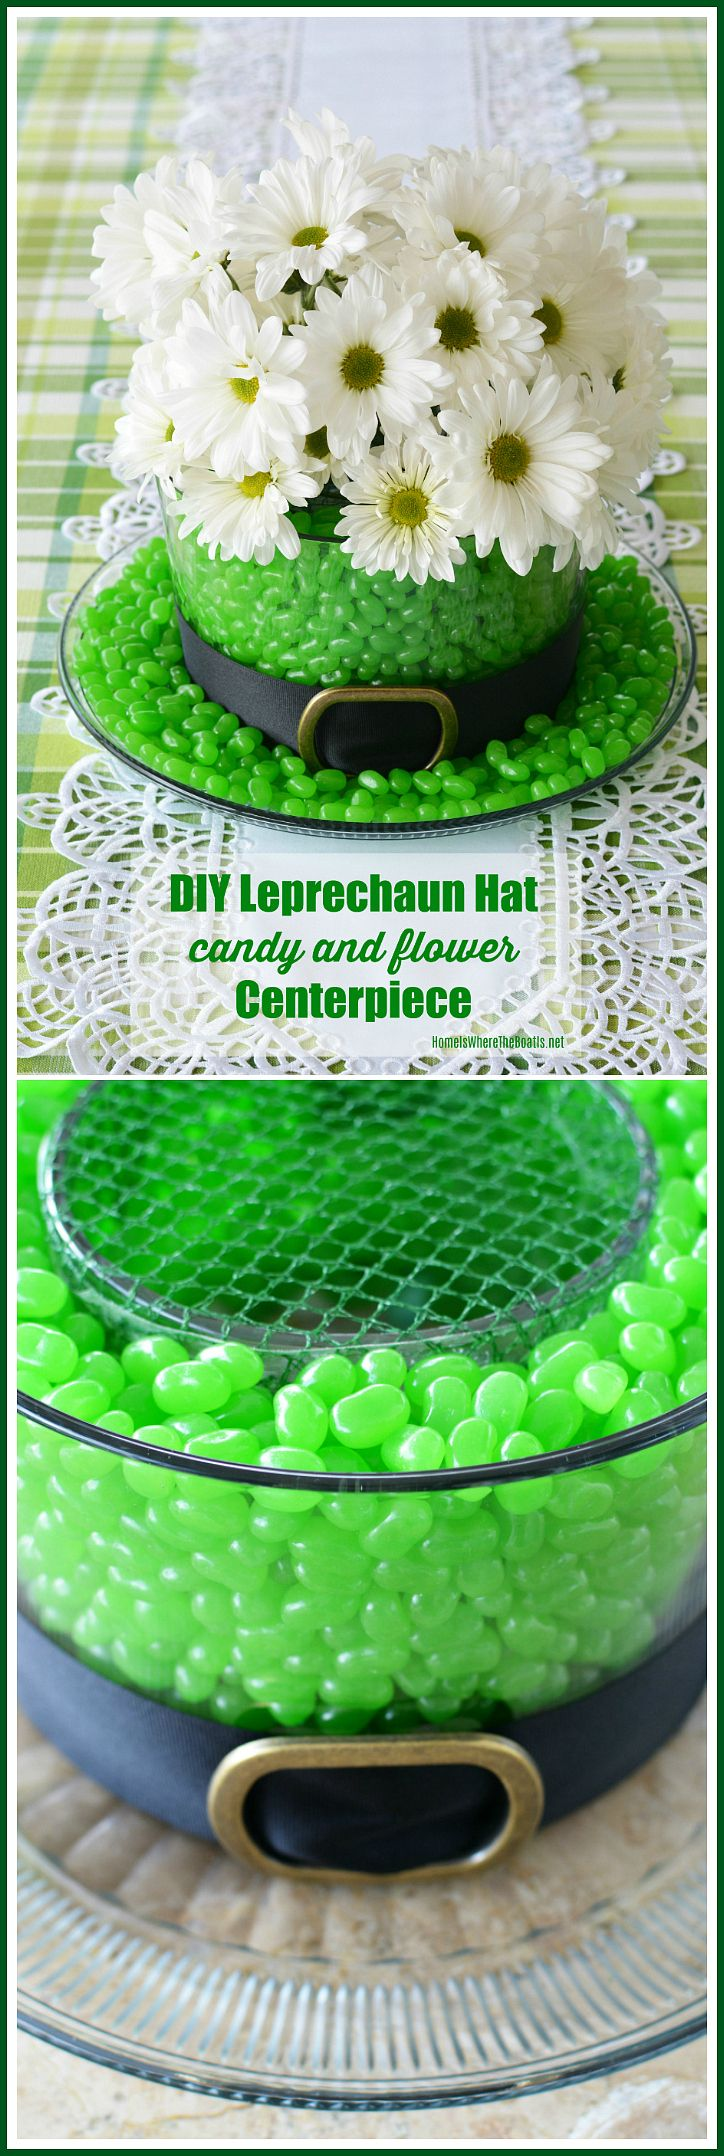 Edible and Blooming Leprechaun Hat Centerpiece DIY for St. Patrick's Day using candy and flowers | ©homeiswheretheboatis.net #StPatricksDay #centerpiece #DIY #leprechaunhat